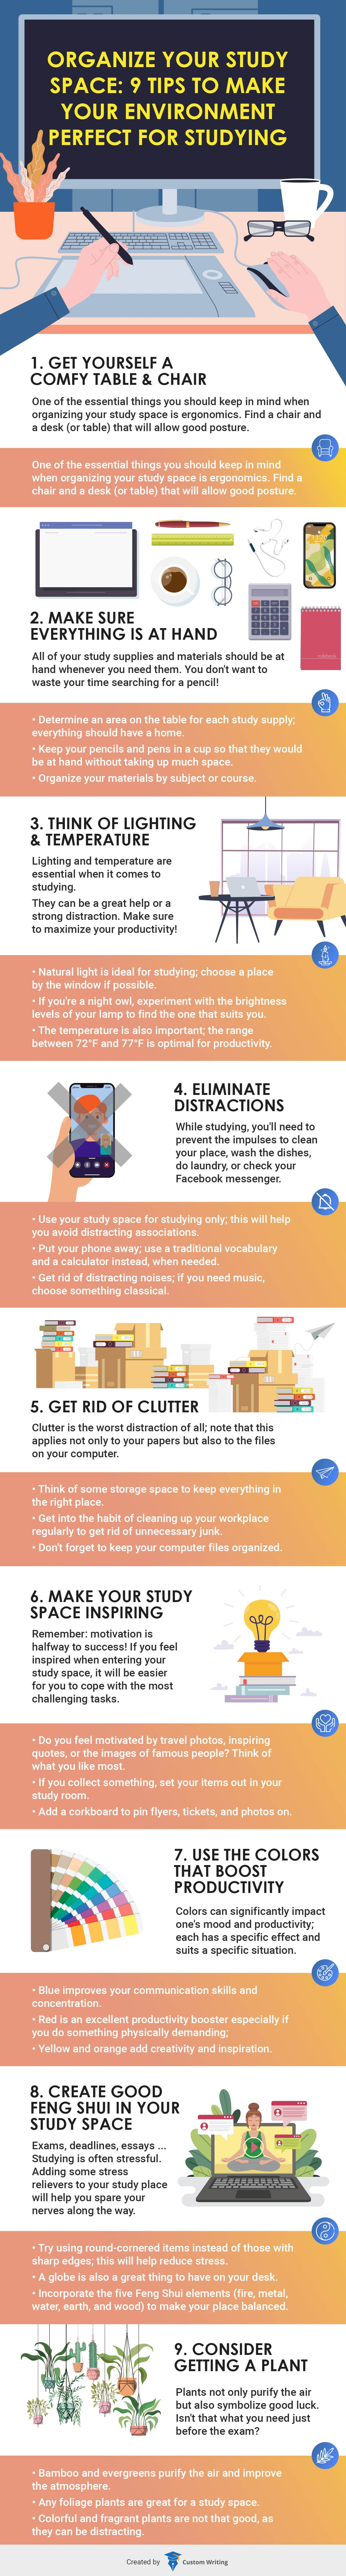 Organize Your Study Space: 9 Tips to Make Your Environment Perfect for Studying #infographic